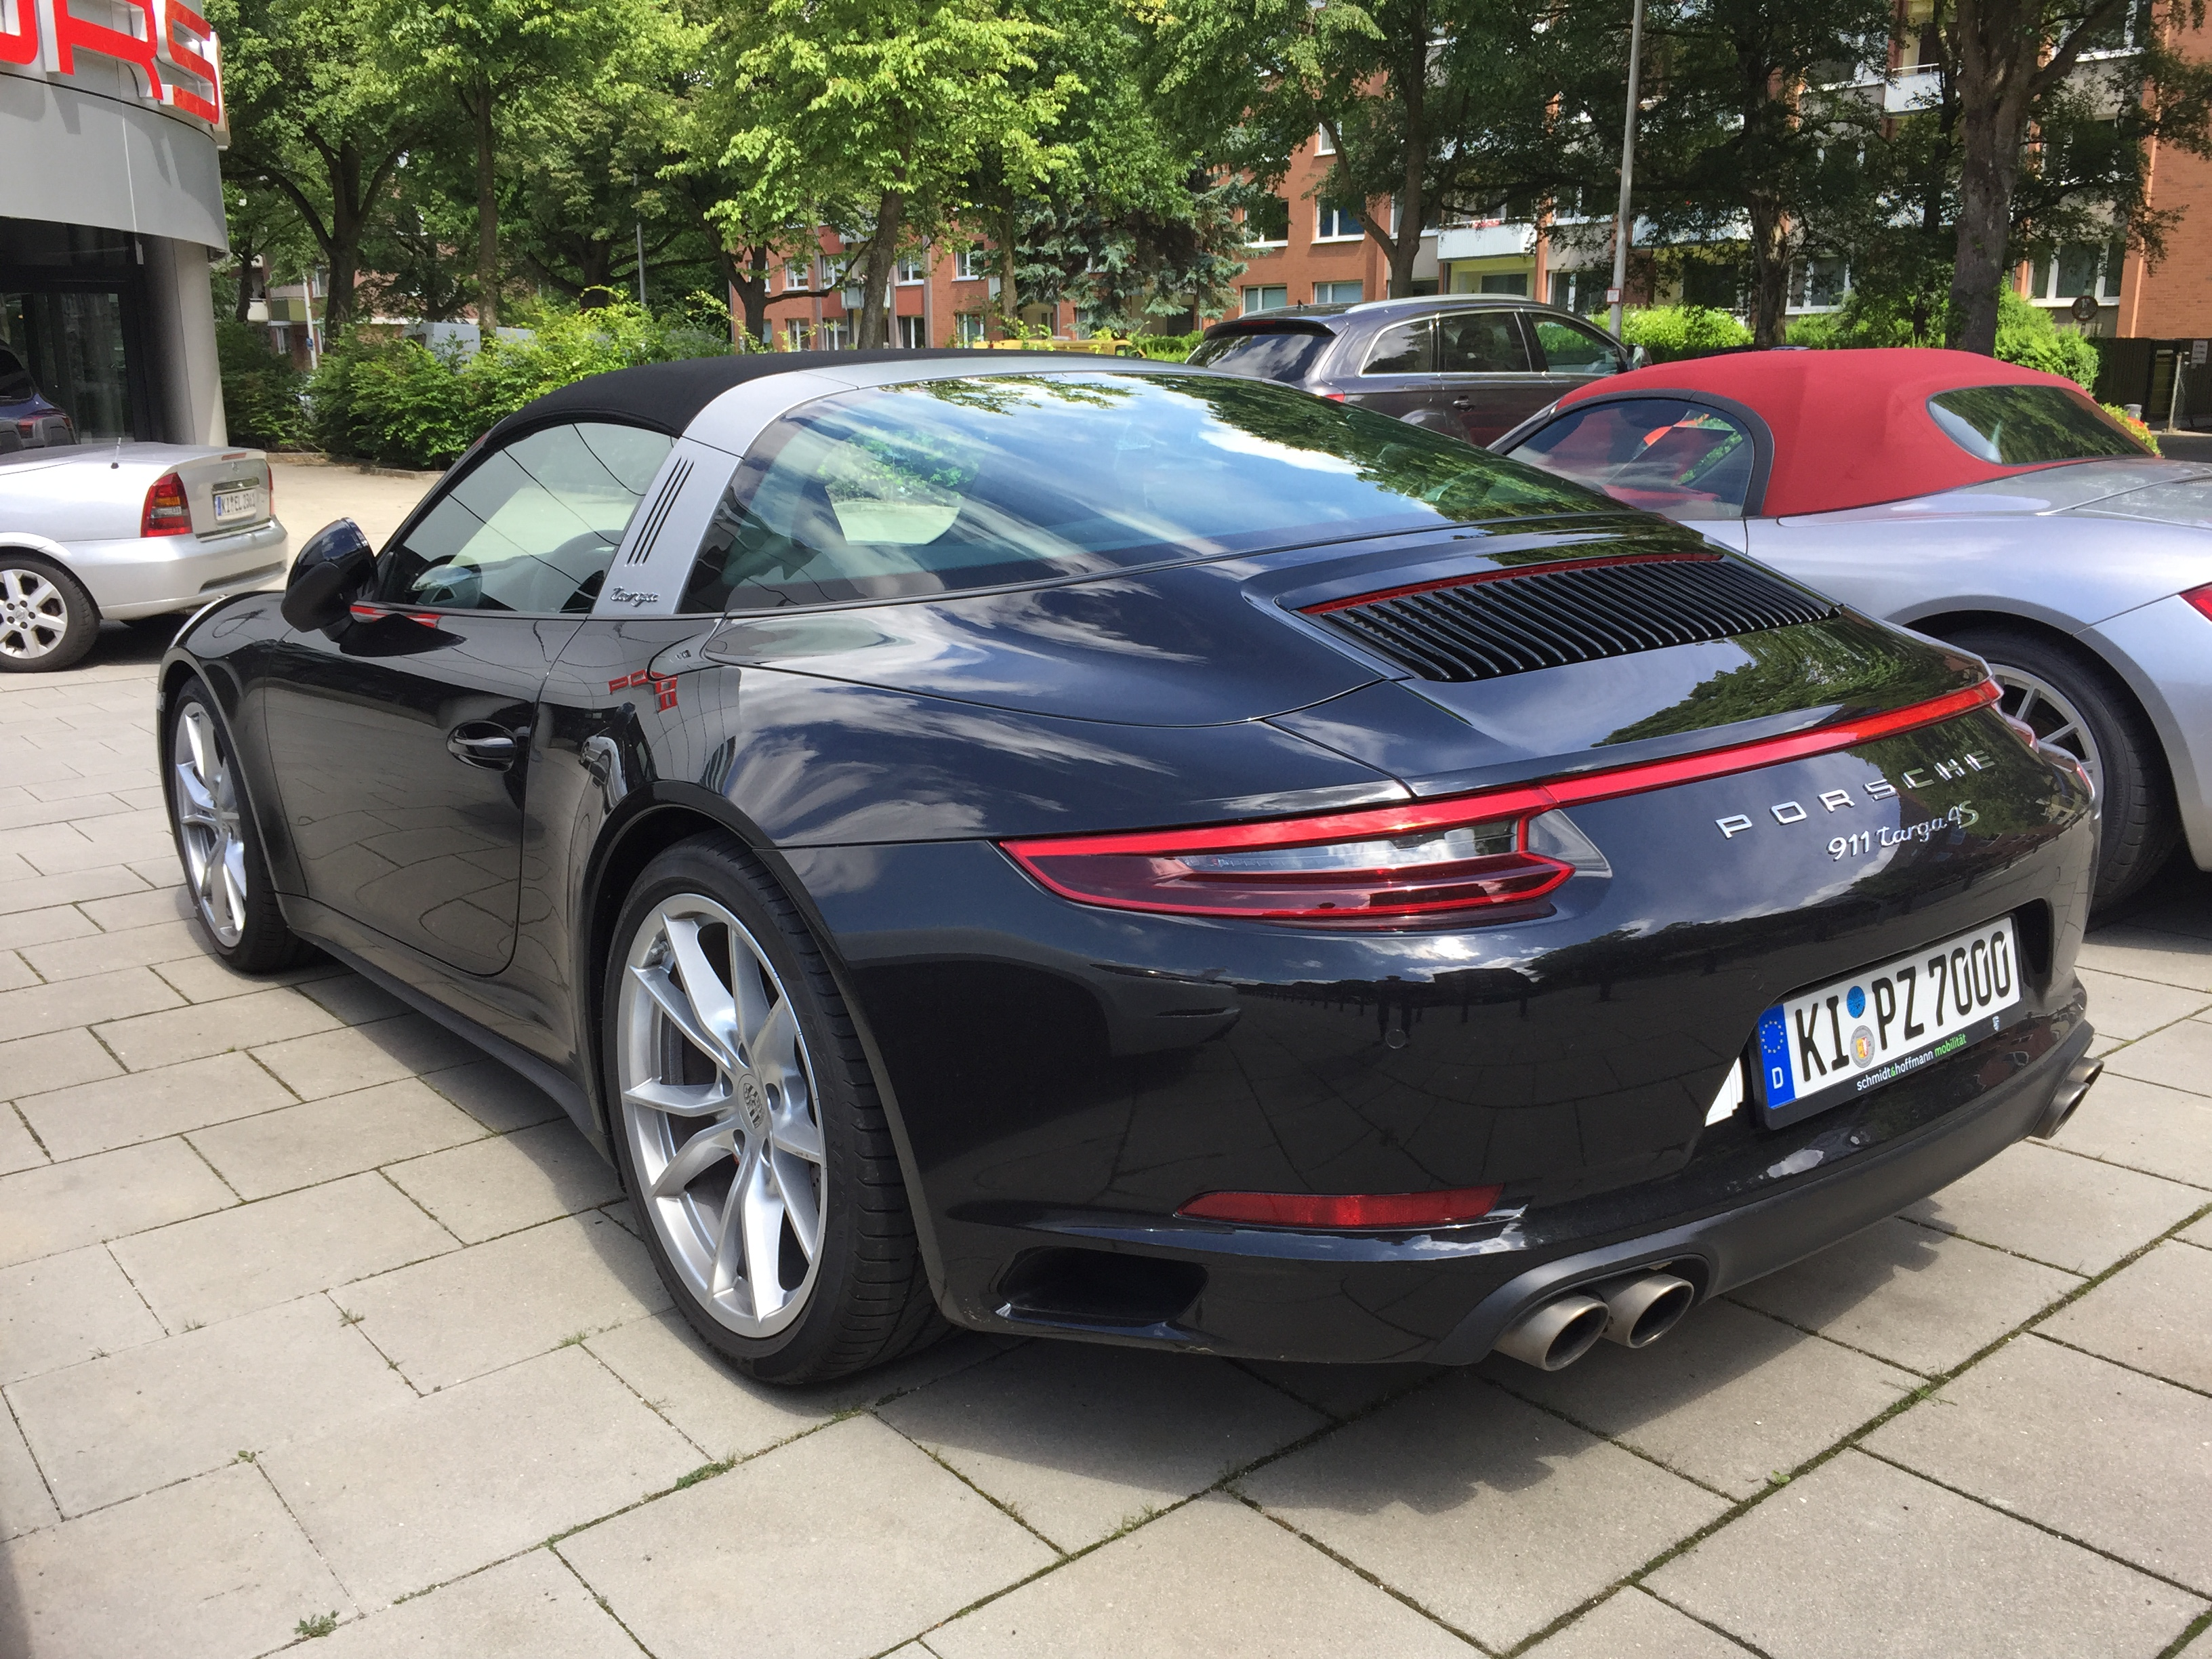 Fileporsche 991 targa heckg wikimedia commons fileporsche 991 targa heckg sciox Image collections